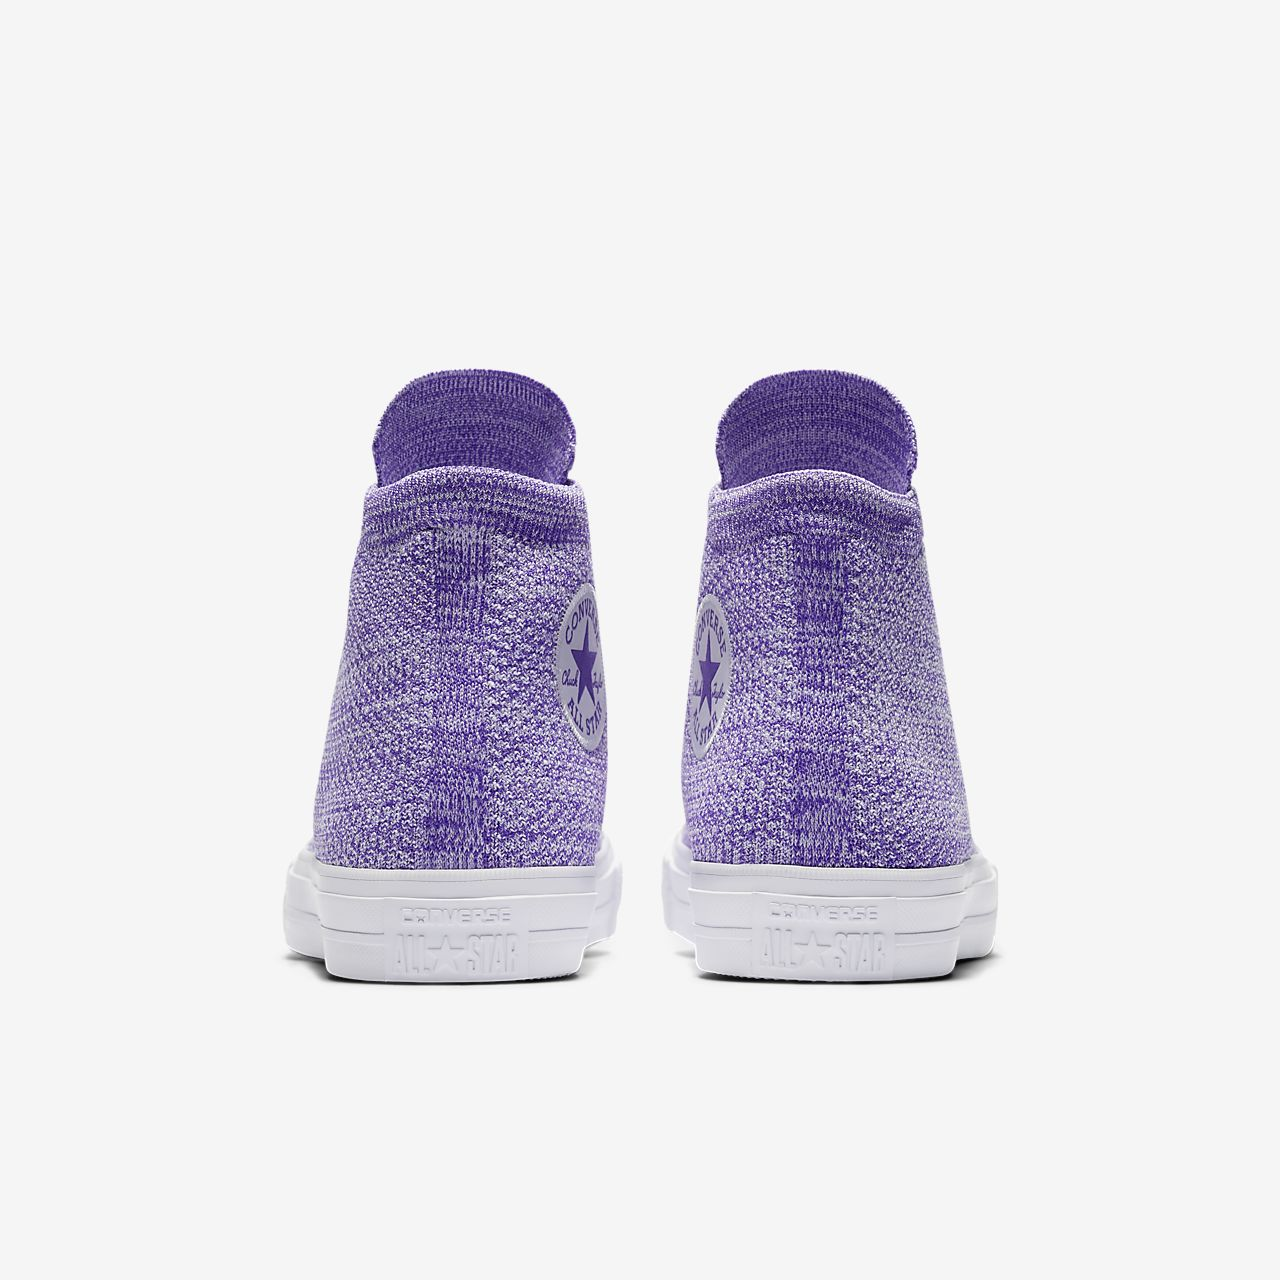 converse chuck taylor all star x nike flyknit low top unisex shoe ... 18f28a5d4